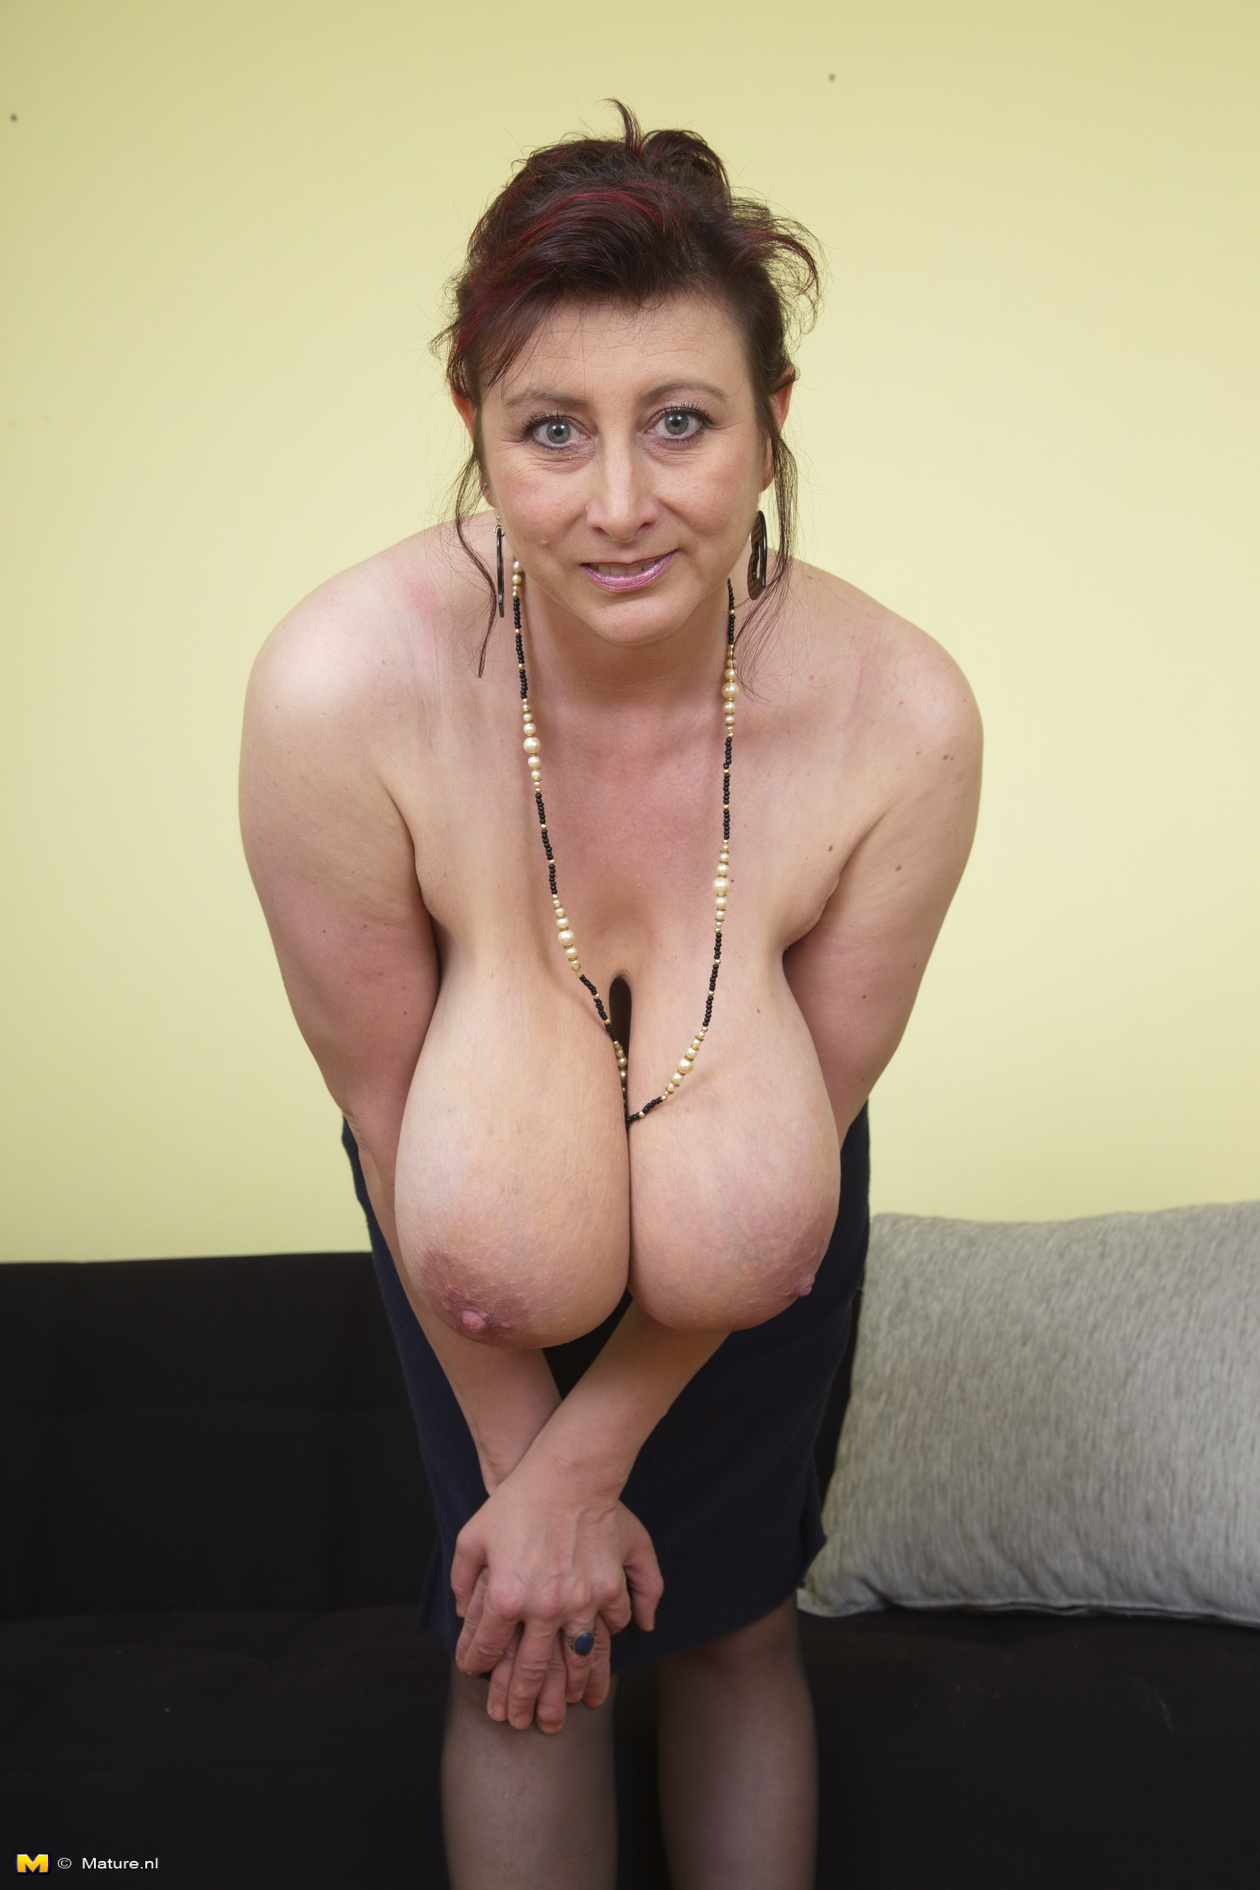 hairy pussy spread tits Mature big